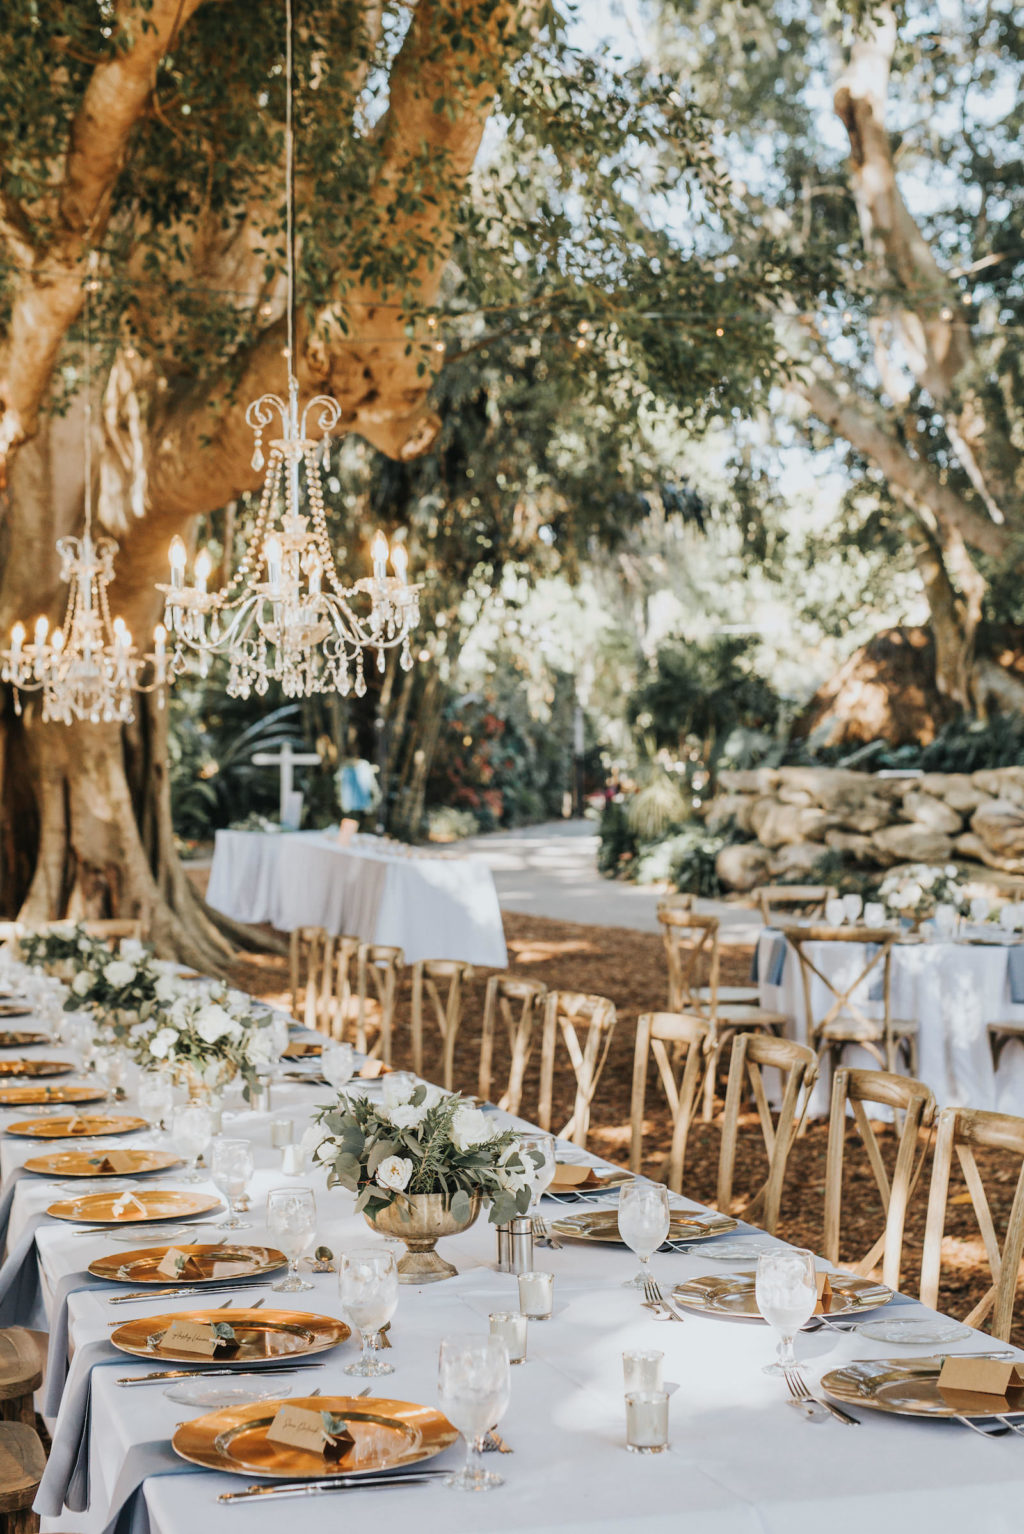 Romantic Rustic Outdoor Garden Wedding Reception | Sarasota Marie Selby Botanical Gardens | Gold Chargers and French Country Wooden Reception Chairs | Crystal Chandeliers Hanging from Trees | Sarasota Wedding Planner Taylored Affairs